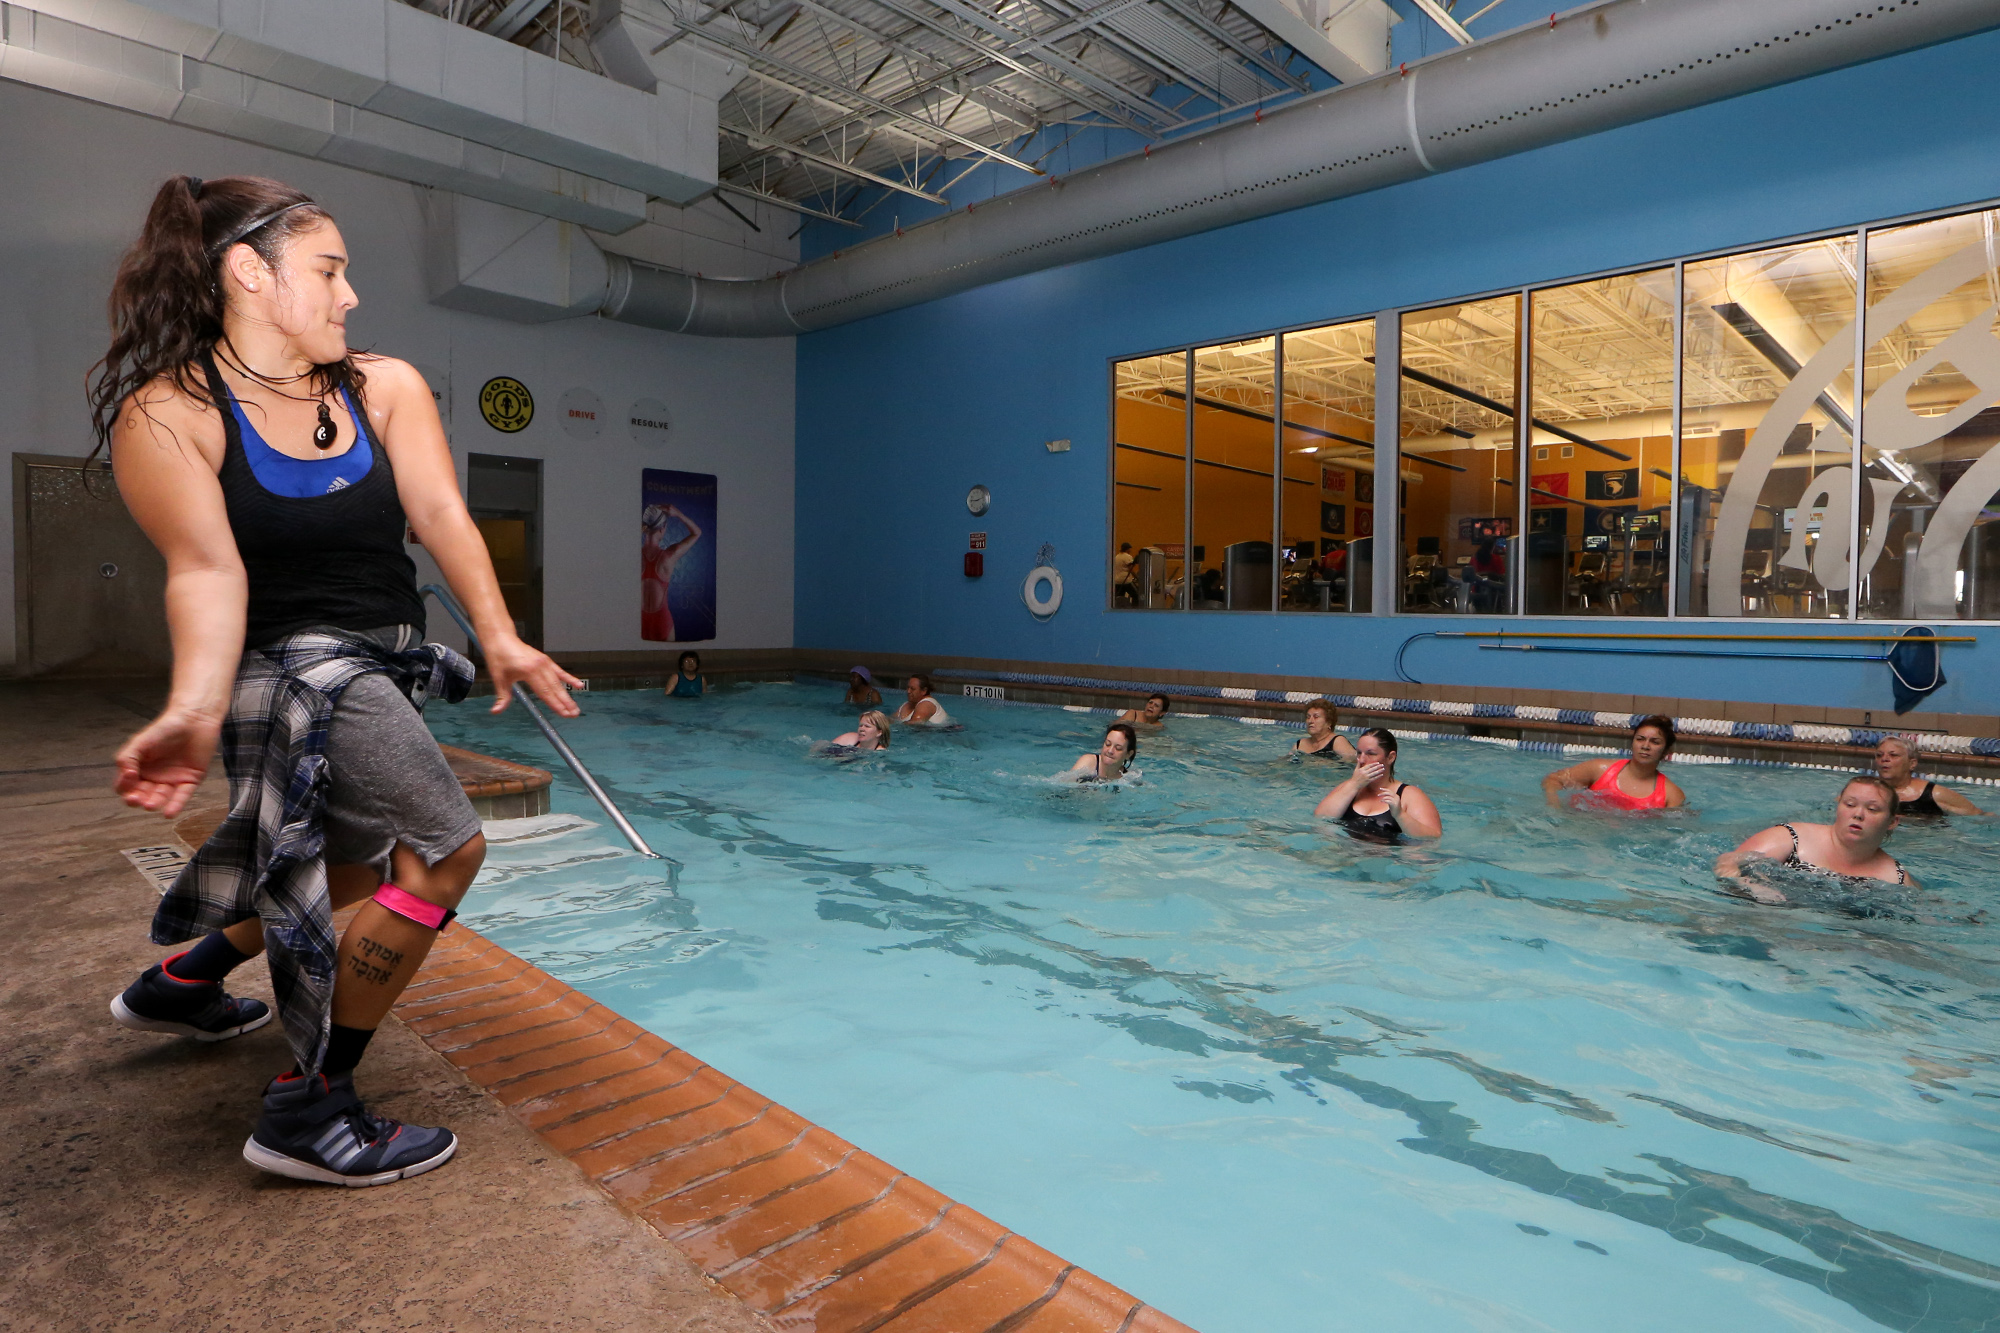 The pool is a good place to work out for Fitness first gyms with swimming pools